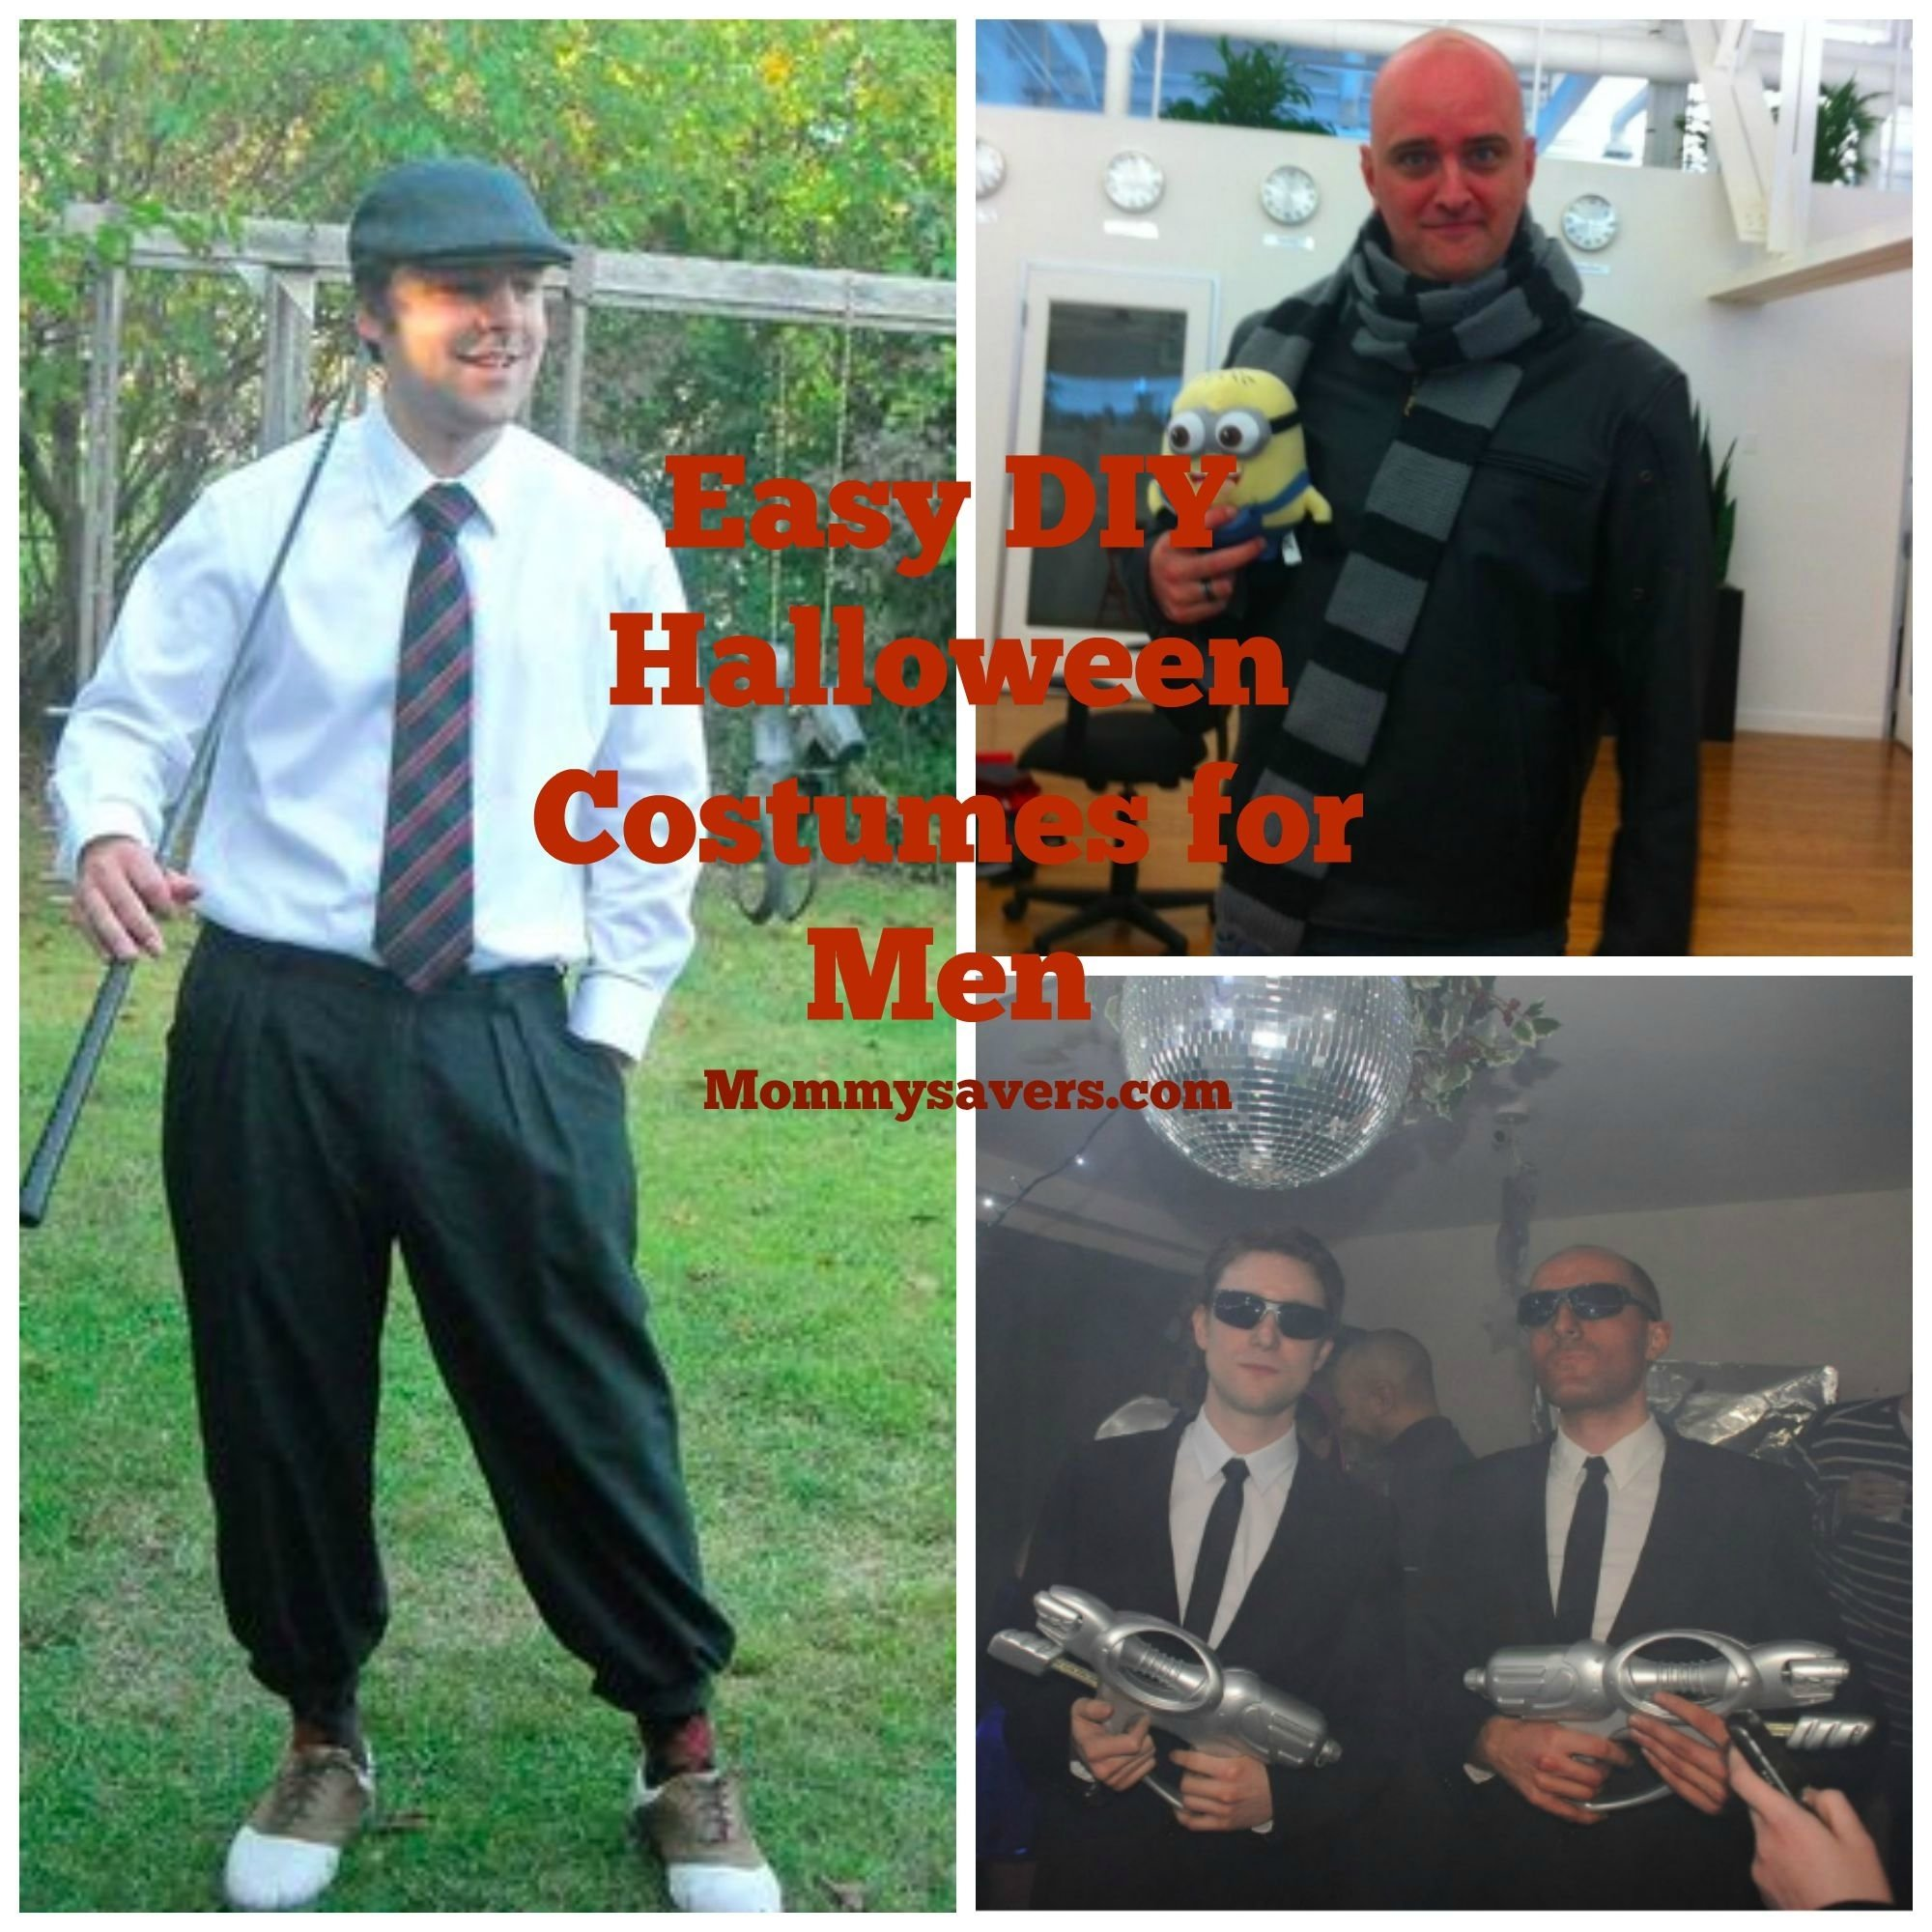 10 stylish homemade halloween costume ideas men diy halloween costumes for men mommysavers 3